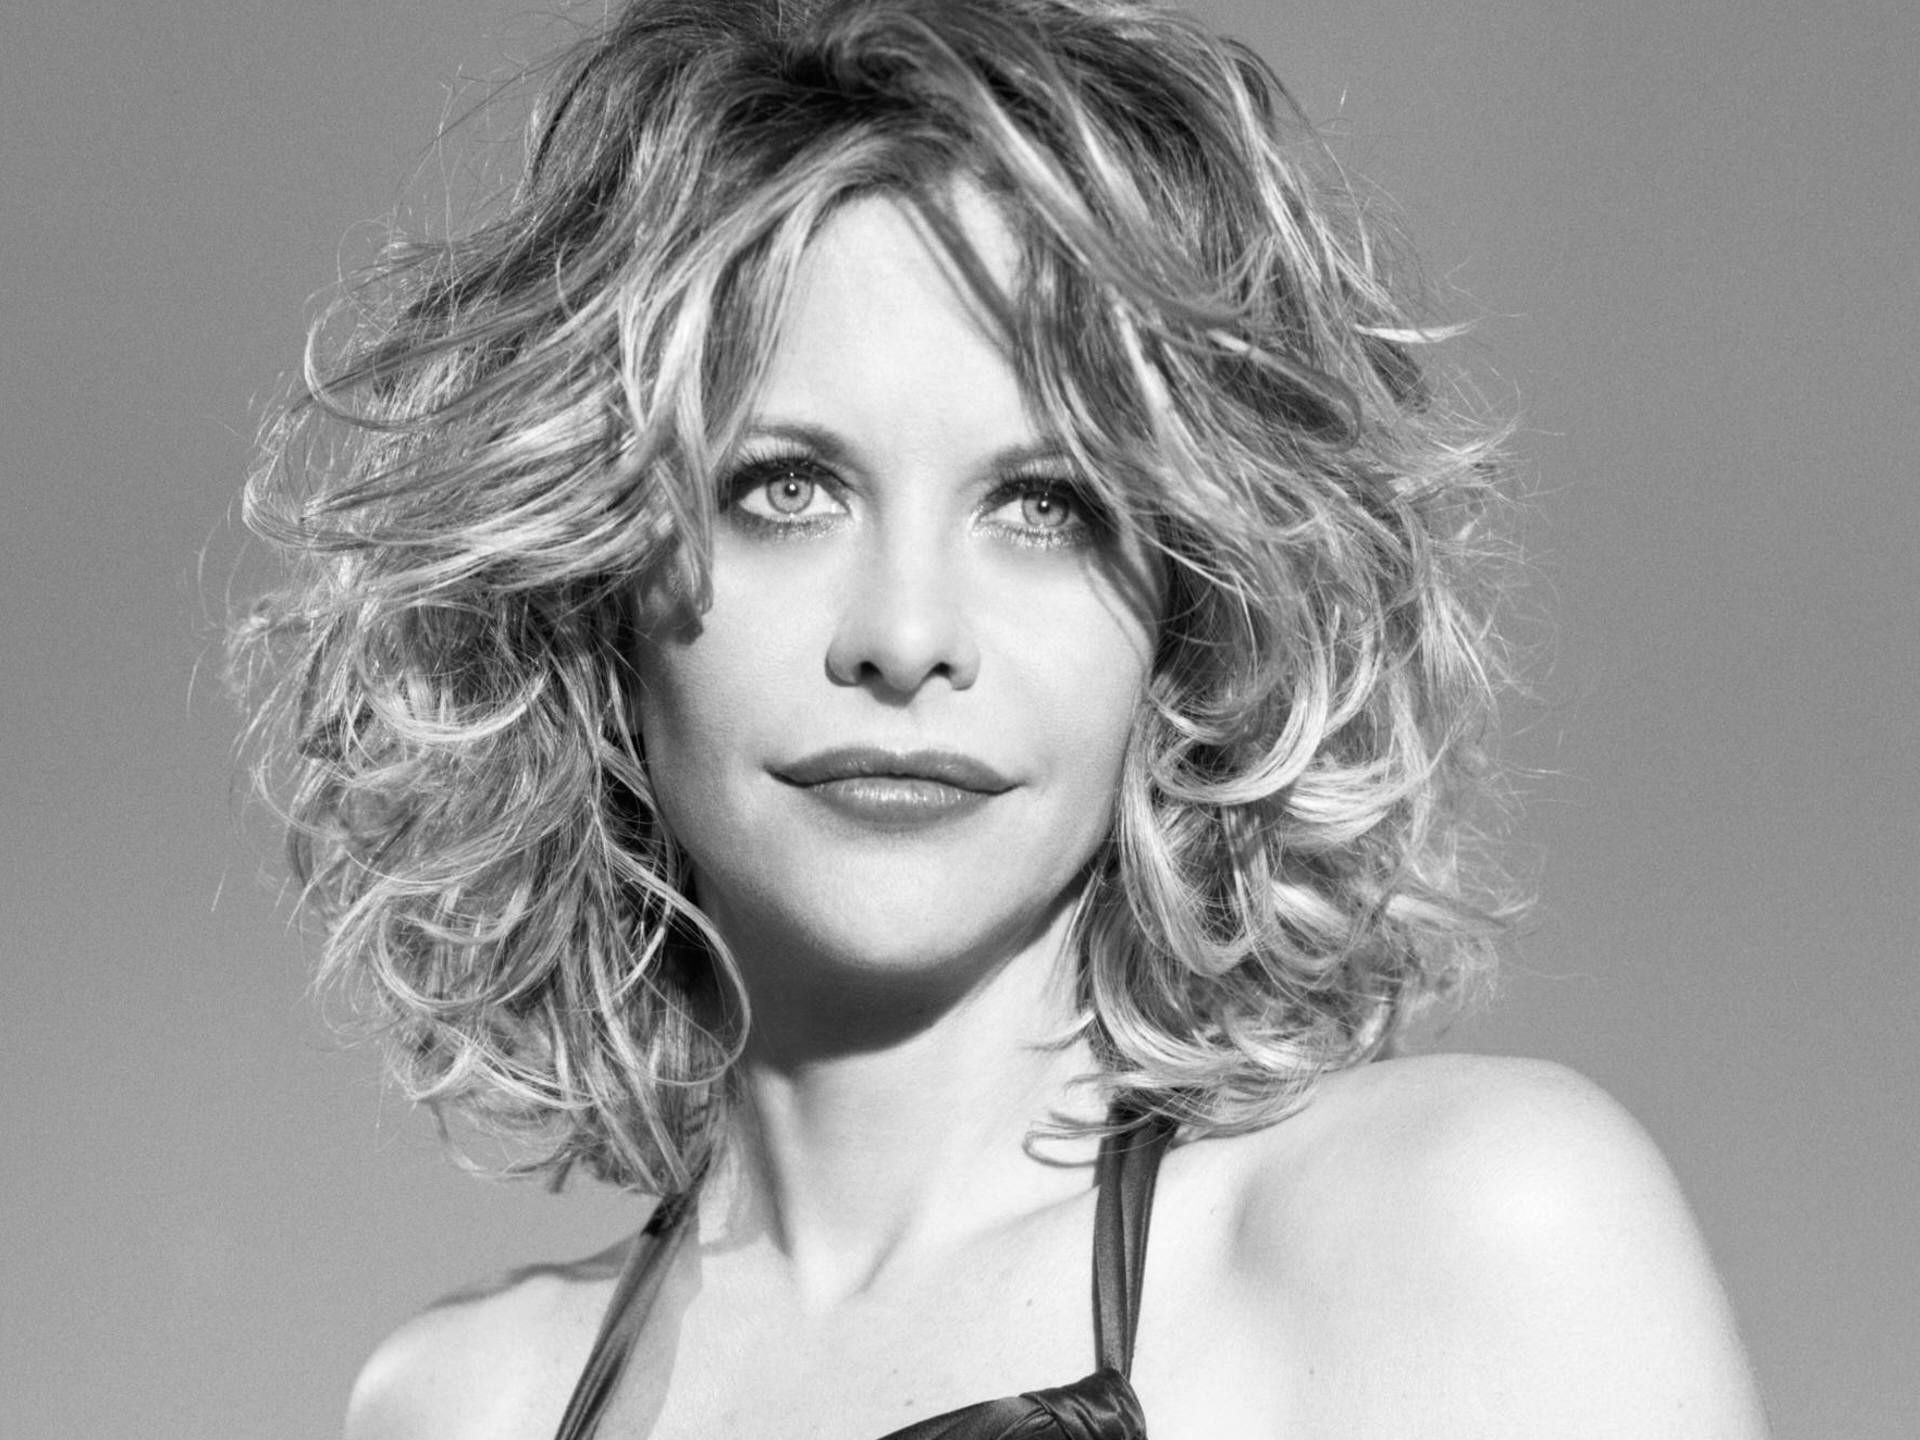 Meg Ryan Wallpapers Images Photos Pictures Backgrounds - Andrew Garfield Hairstyle